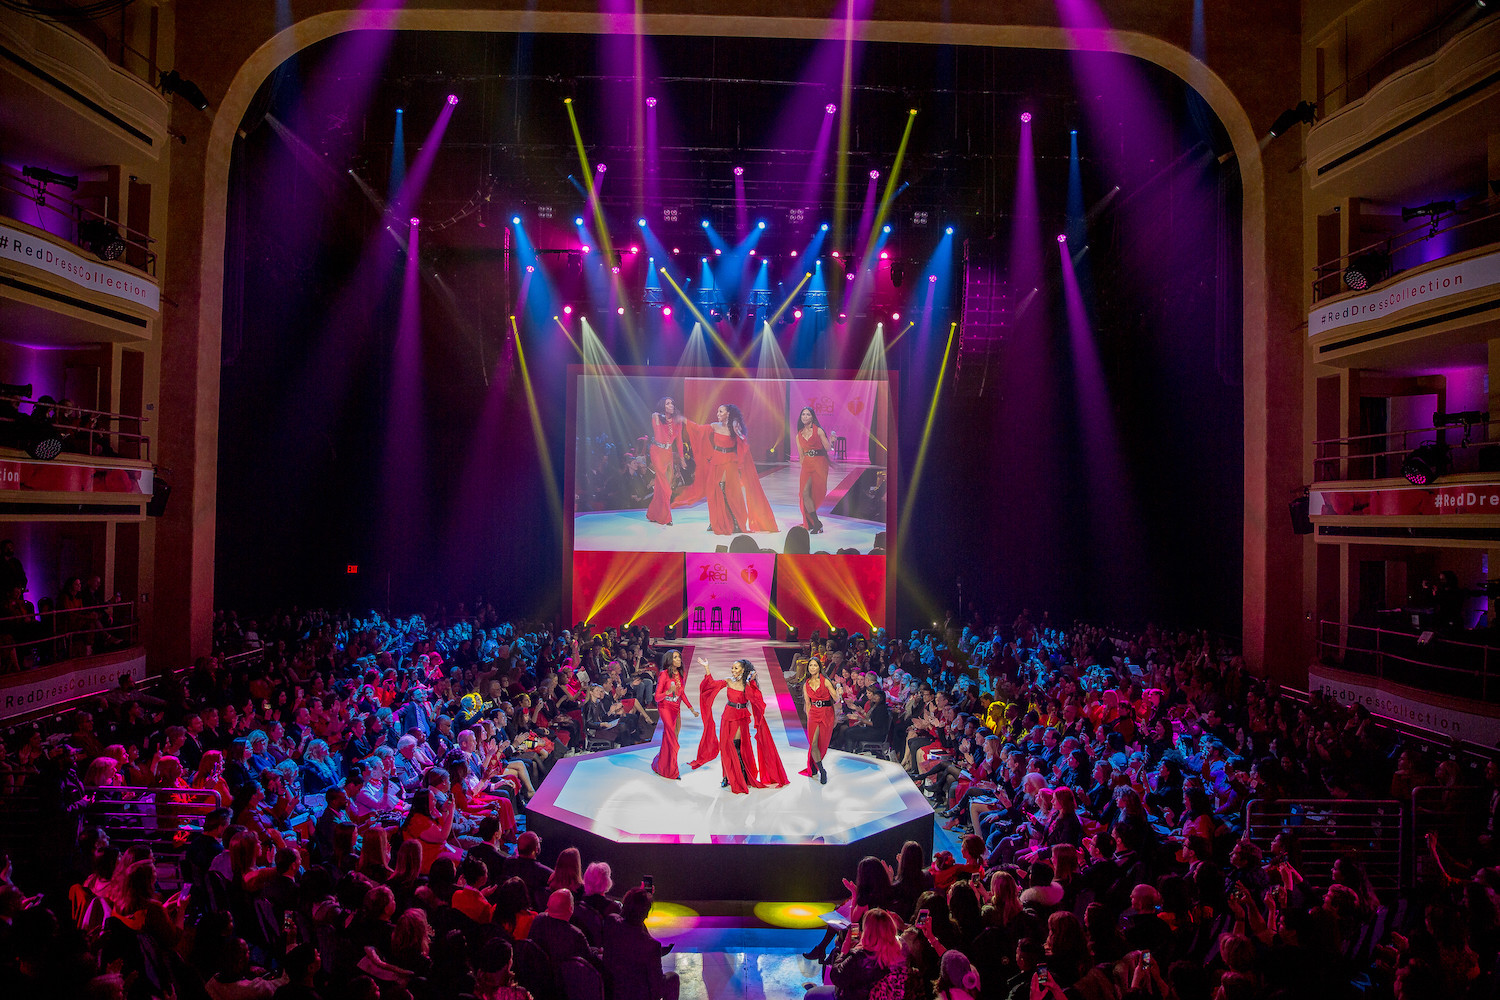 American Heart Association's annual Red Dress Fashion Show in the Hammerstein Ballroom. Photo Credit: Mark Doyle